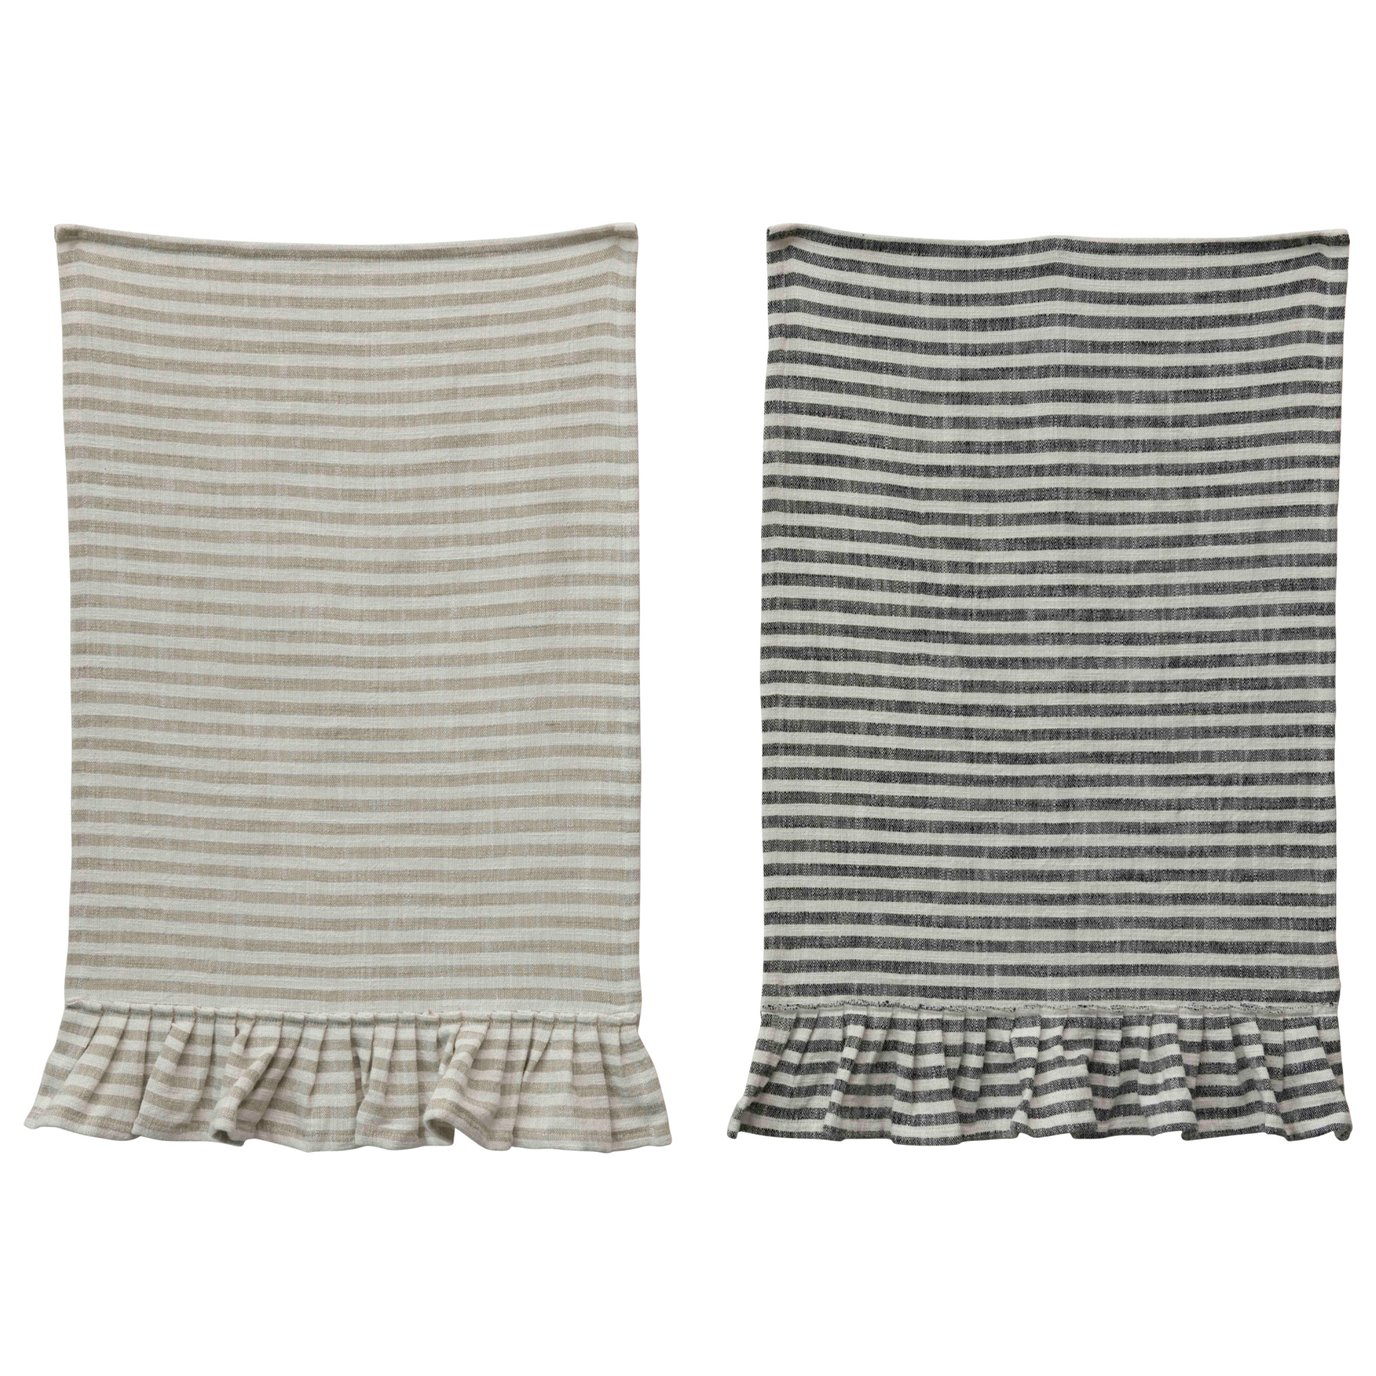 Striped Cotton Tea Towel with Ruffles (Set of 2 Colors)